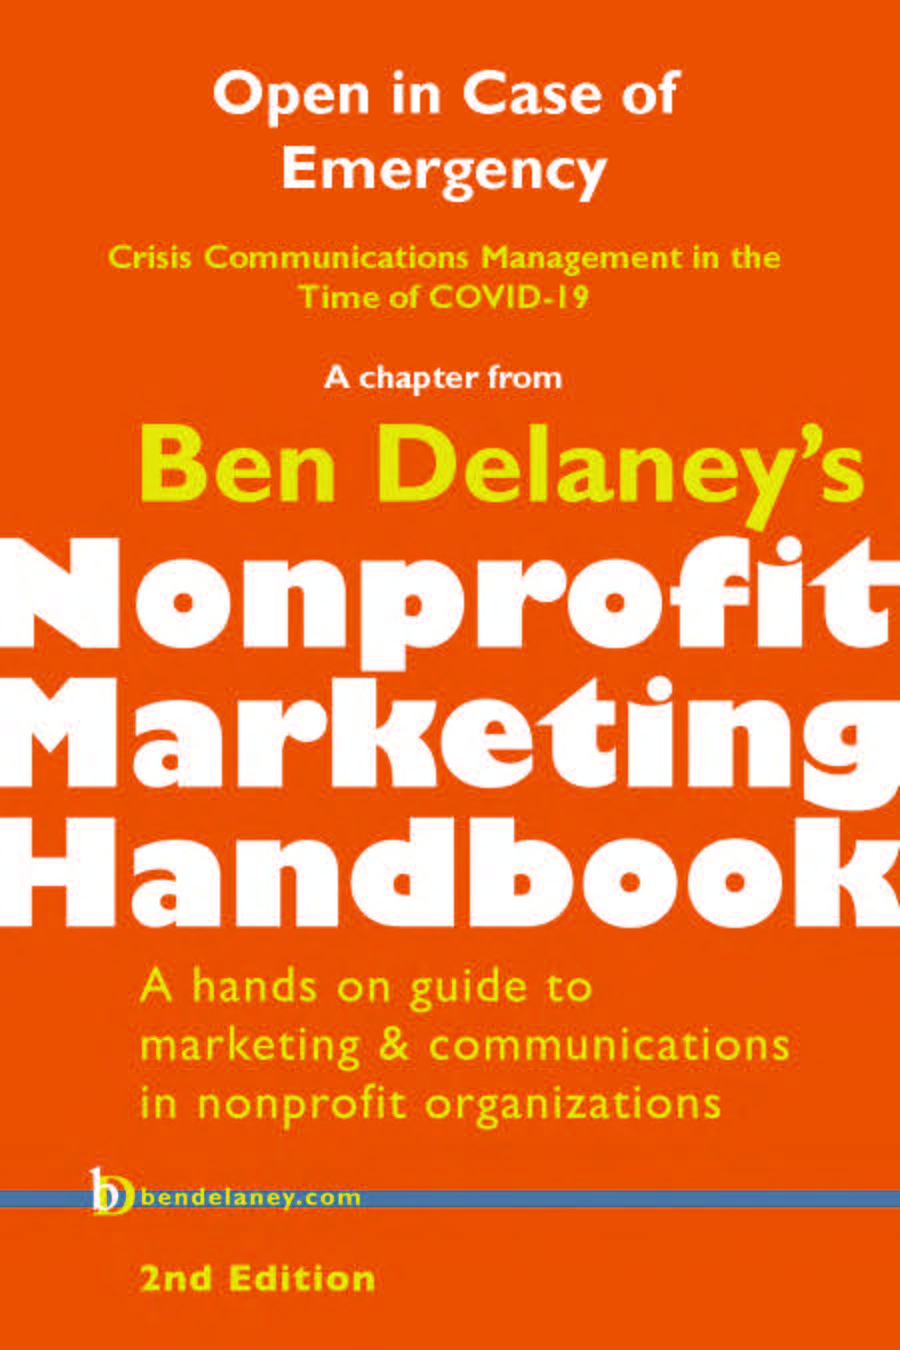 Free communications guide helps nonprofit leaders